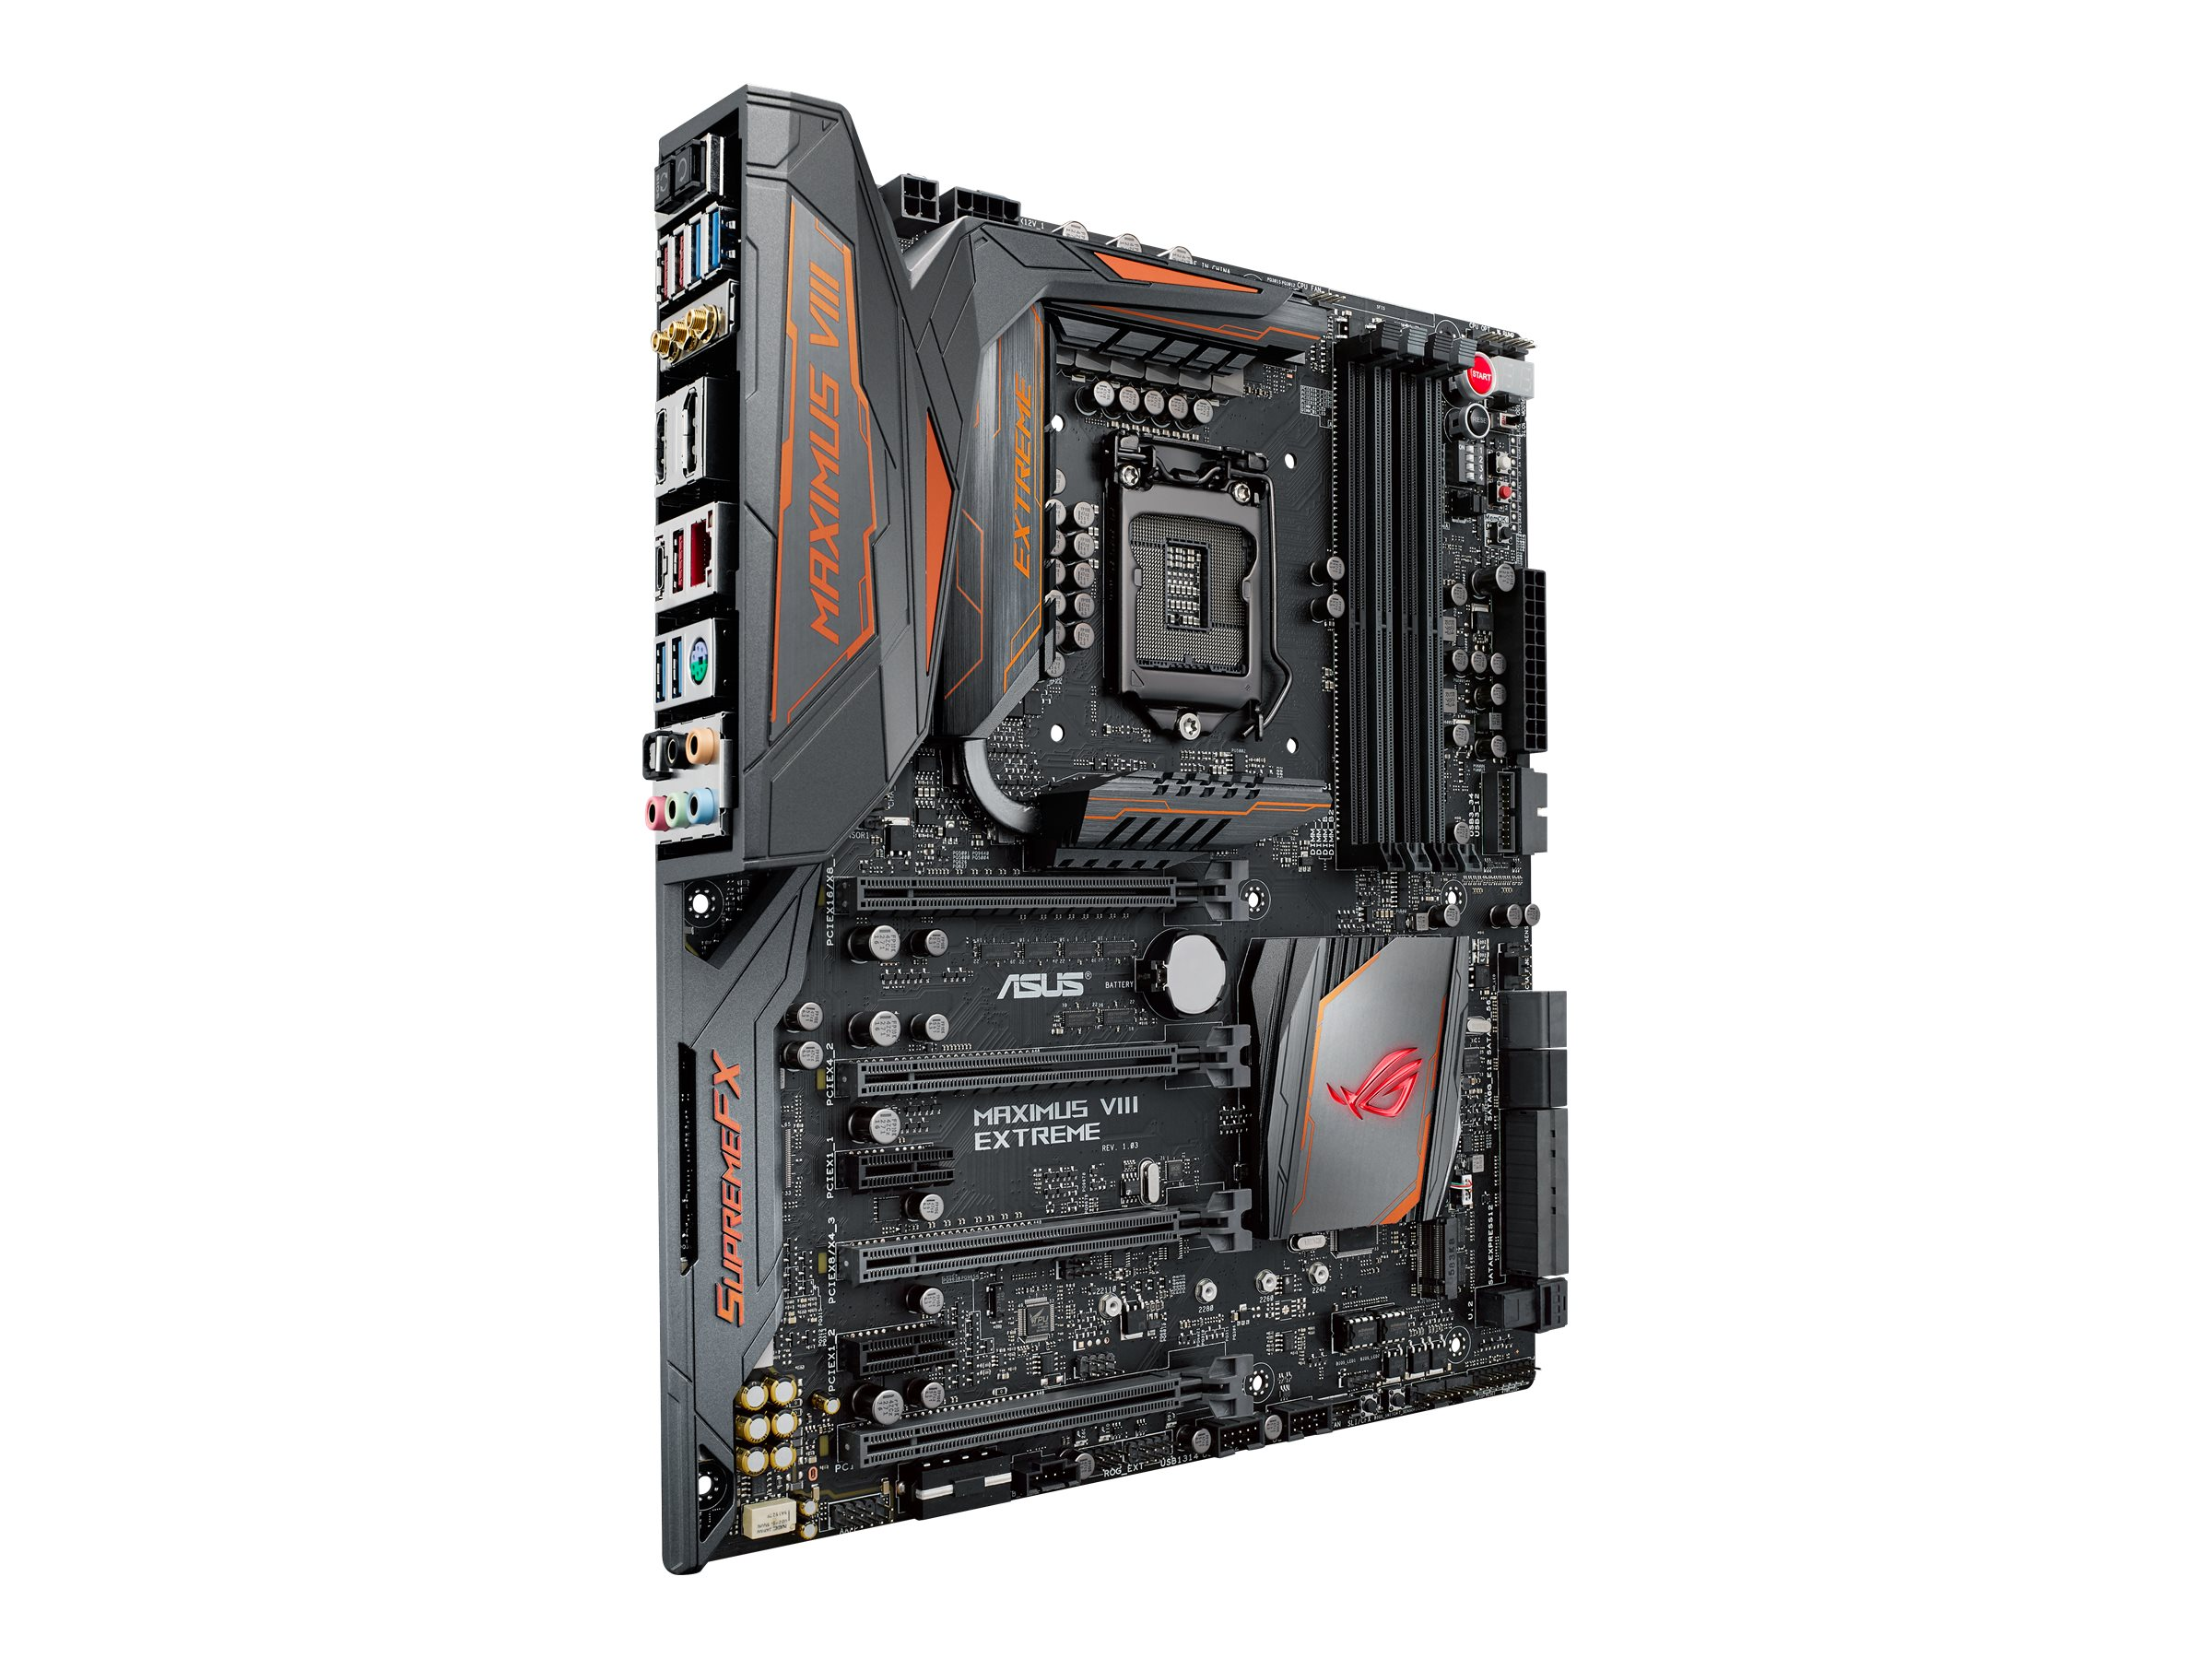 Asus Motherboard, ROG Maximus VIII Extreme Assembly Z170 1151 Core i7 i5 i3 Family Max.64GB DDR4 6xSATA, MAXIMUS VIII EXTREME/ASSEMBLY